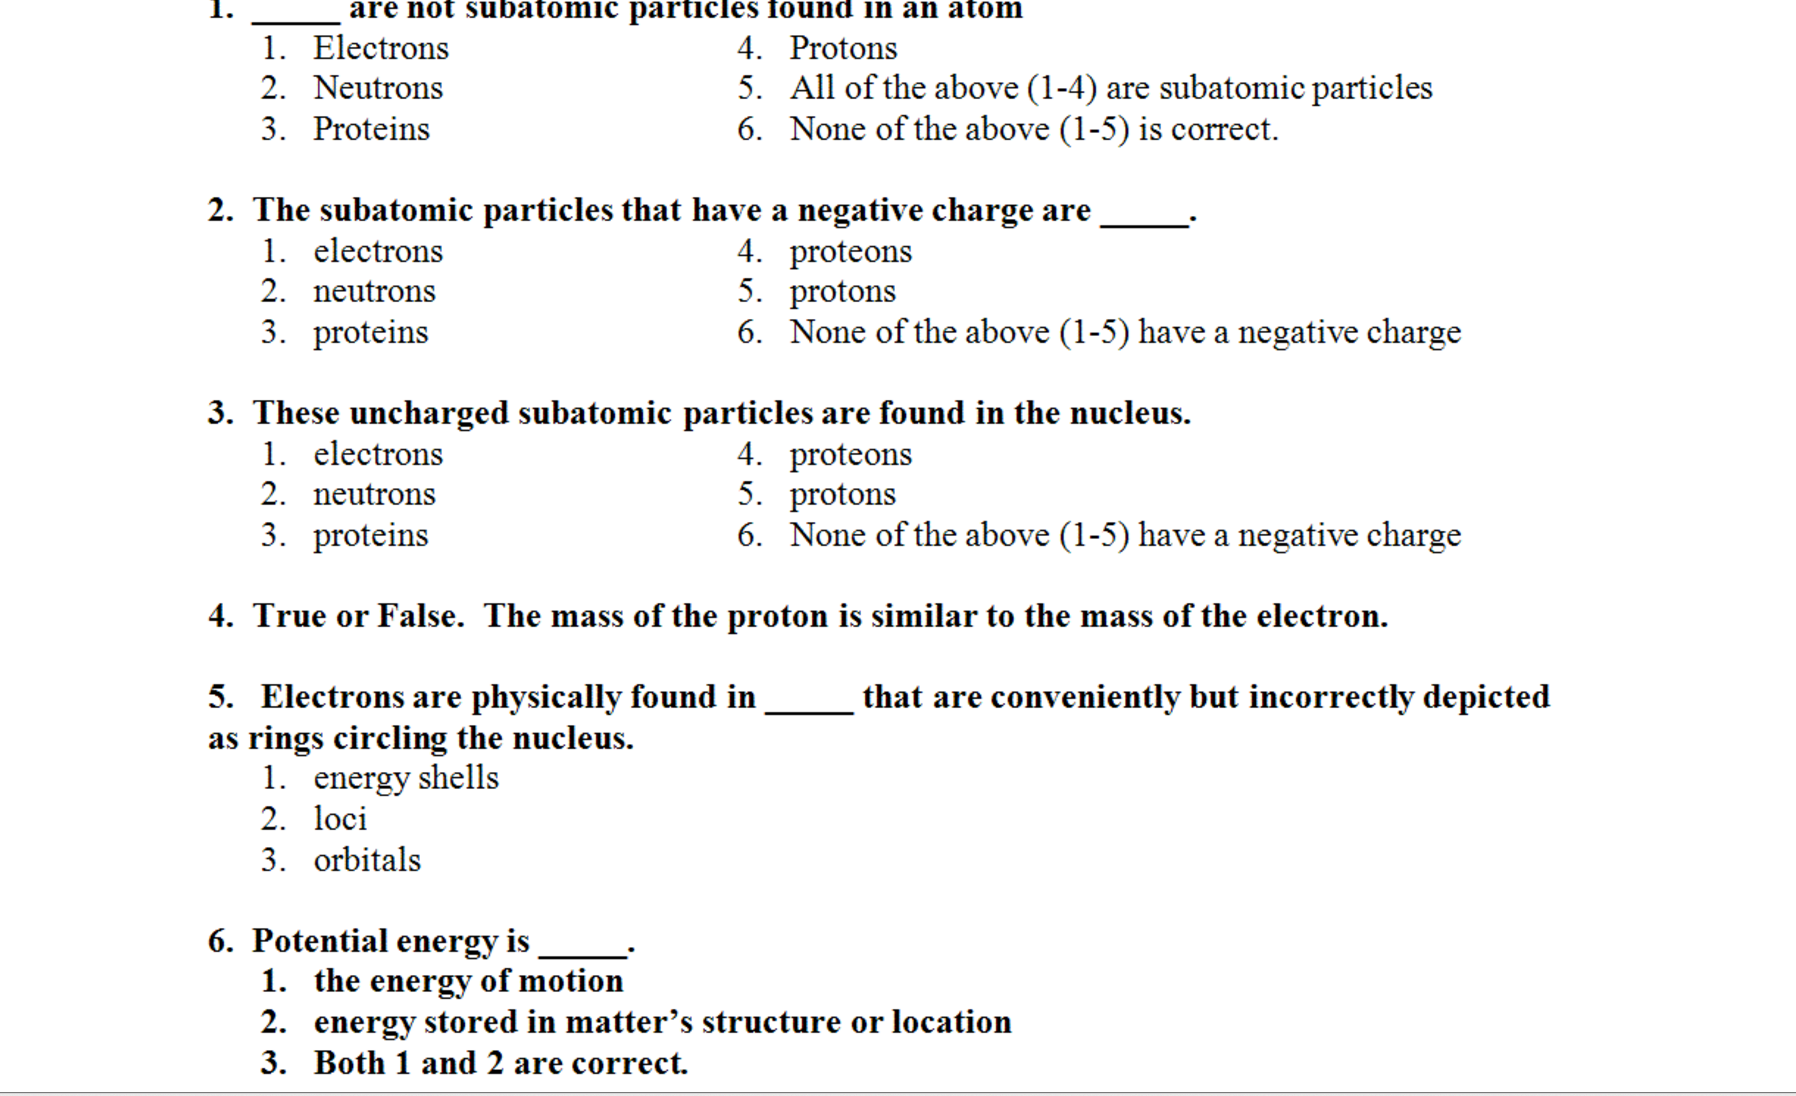 The Subatomic Particles That Have A Negative Charg... | Chegg.com